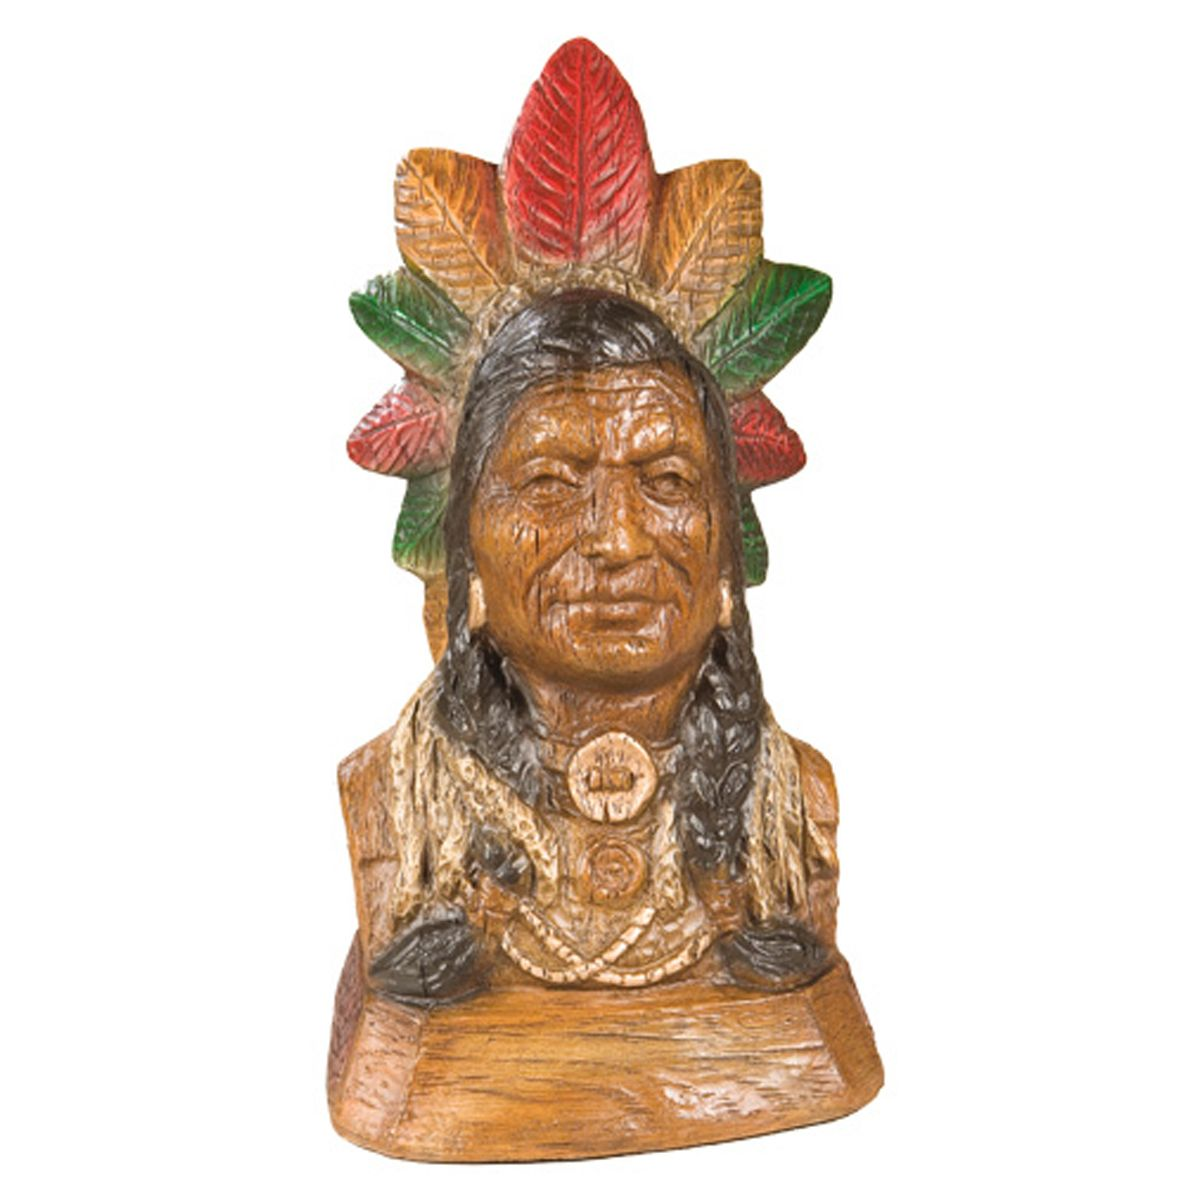 Weathered Chief Sculpture